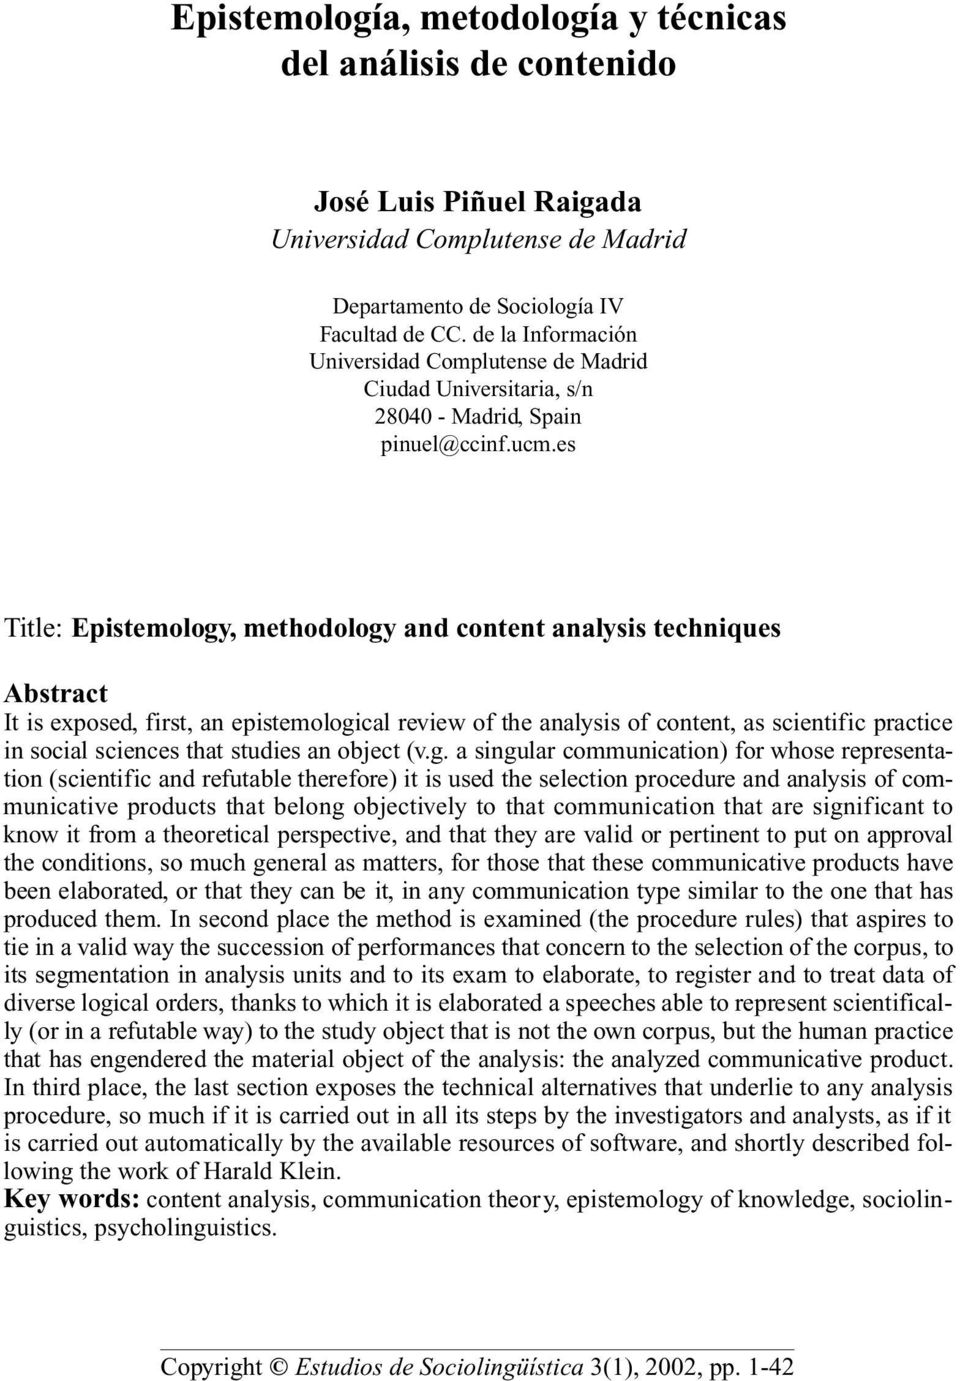 es Title: Epistemology, methodology and content analysis techniques Abstract It is ex p o s e d, first, an epistemological rev i ew of the analysis of content, as scientific practice in social